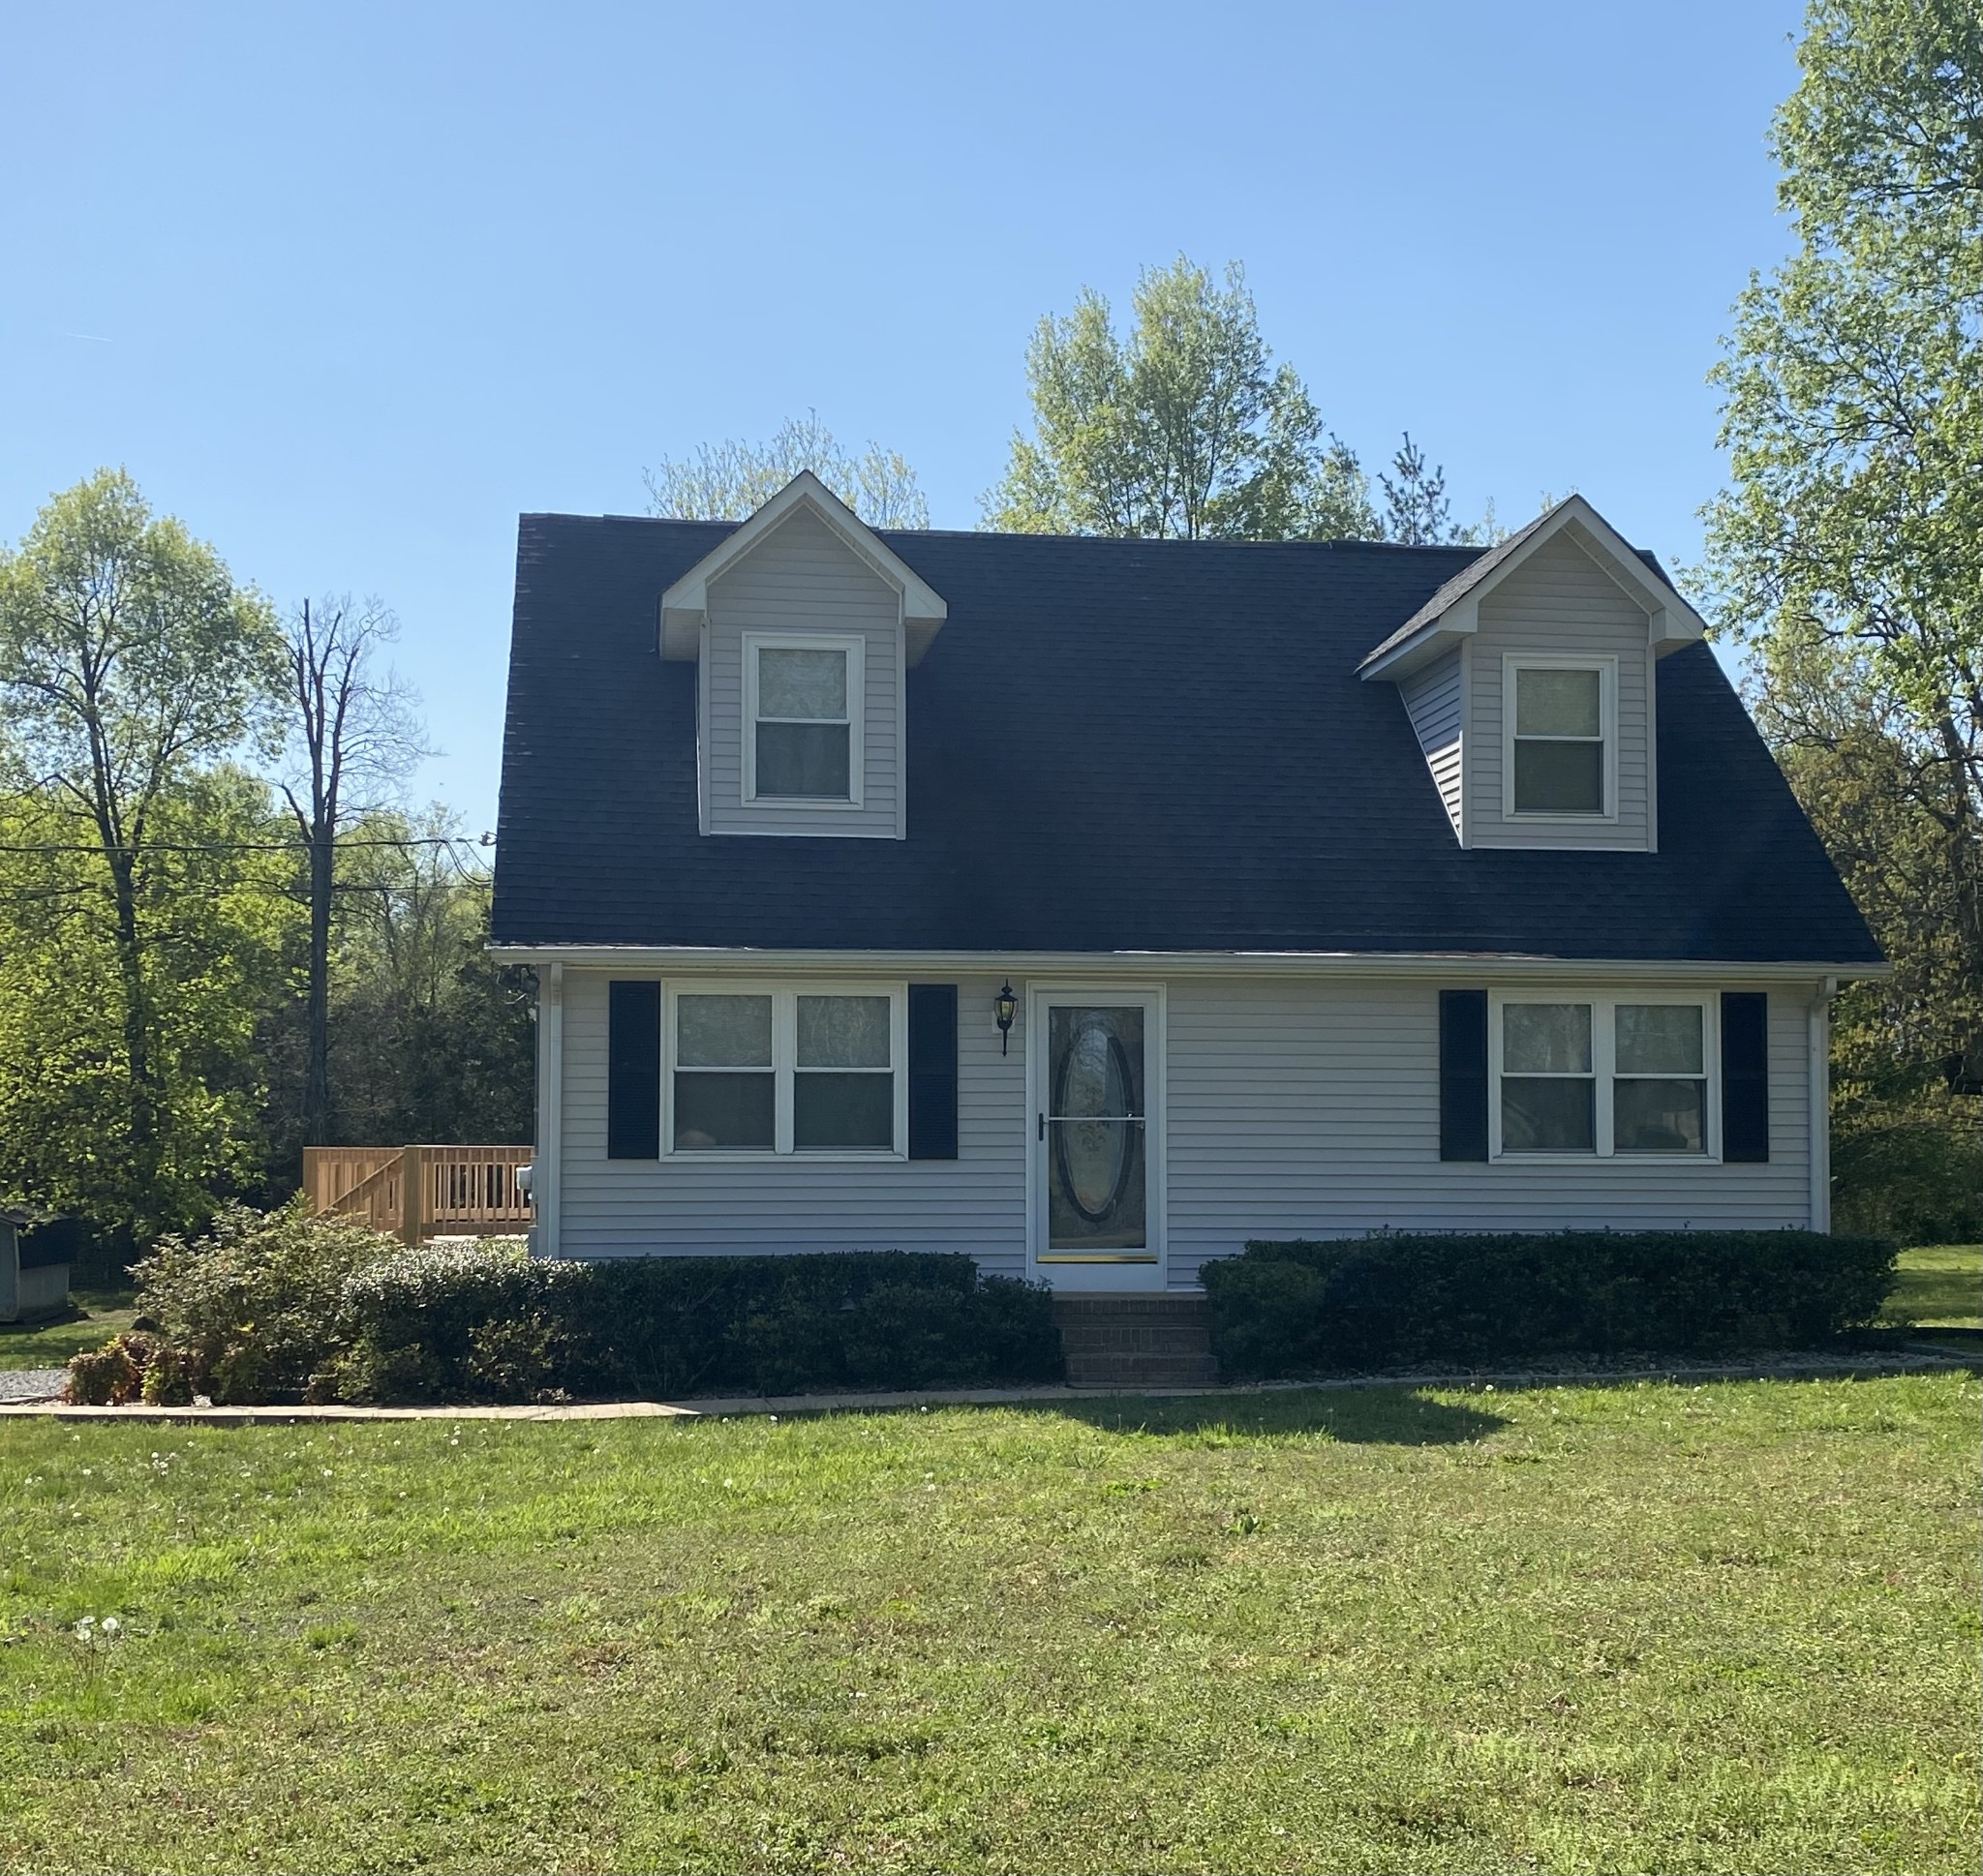 148 Deer Point Rd Property Photo - Unionville, TN real estate listing